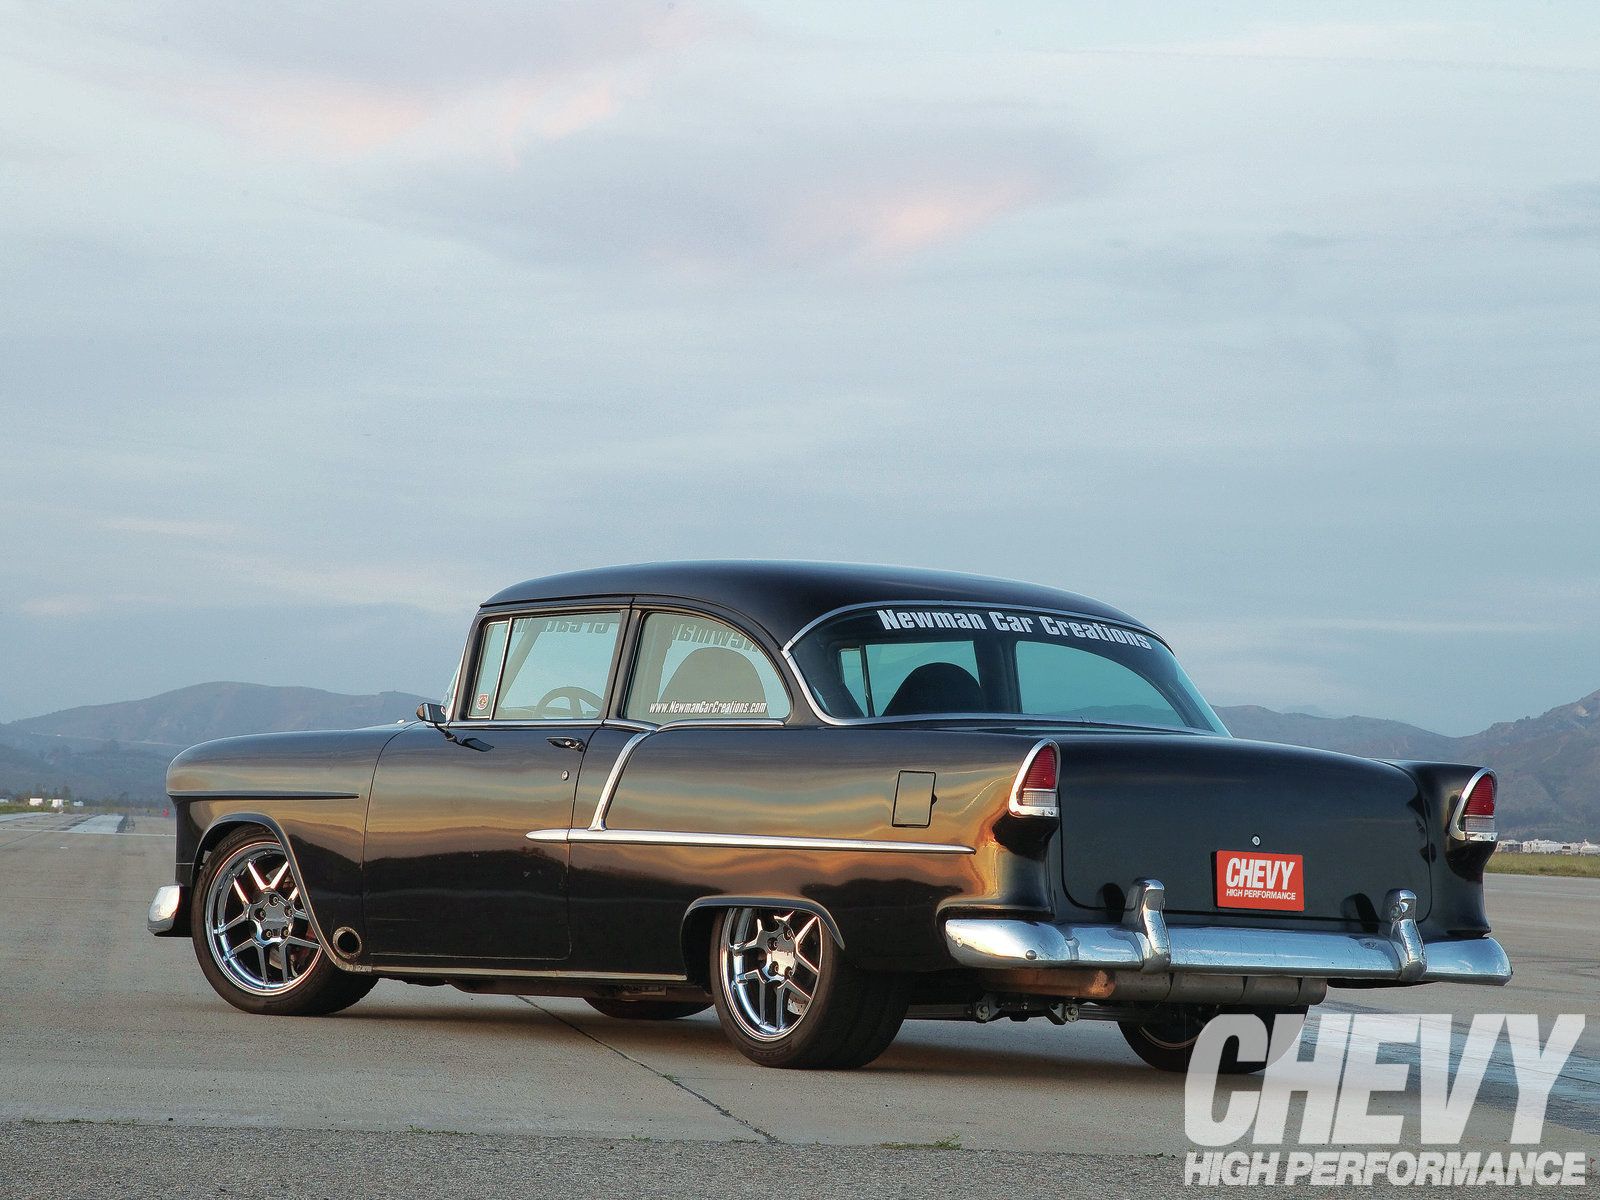 Chevrolet Bel air 2014 foto - 2